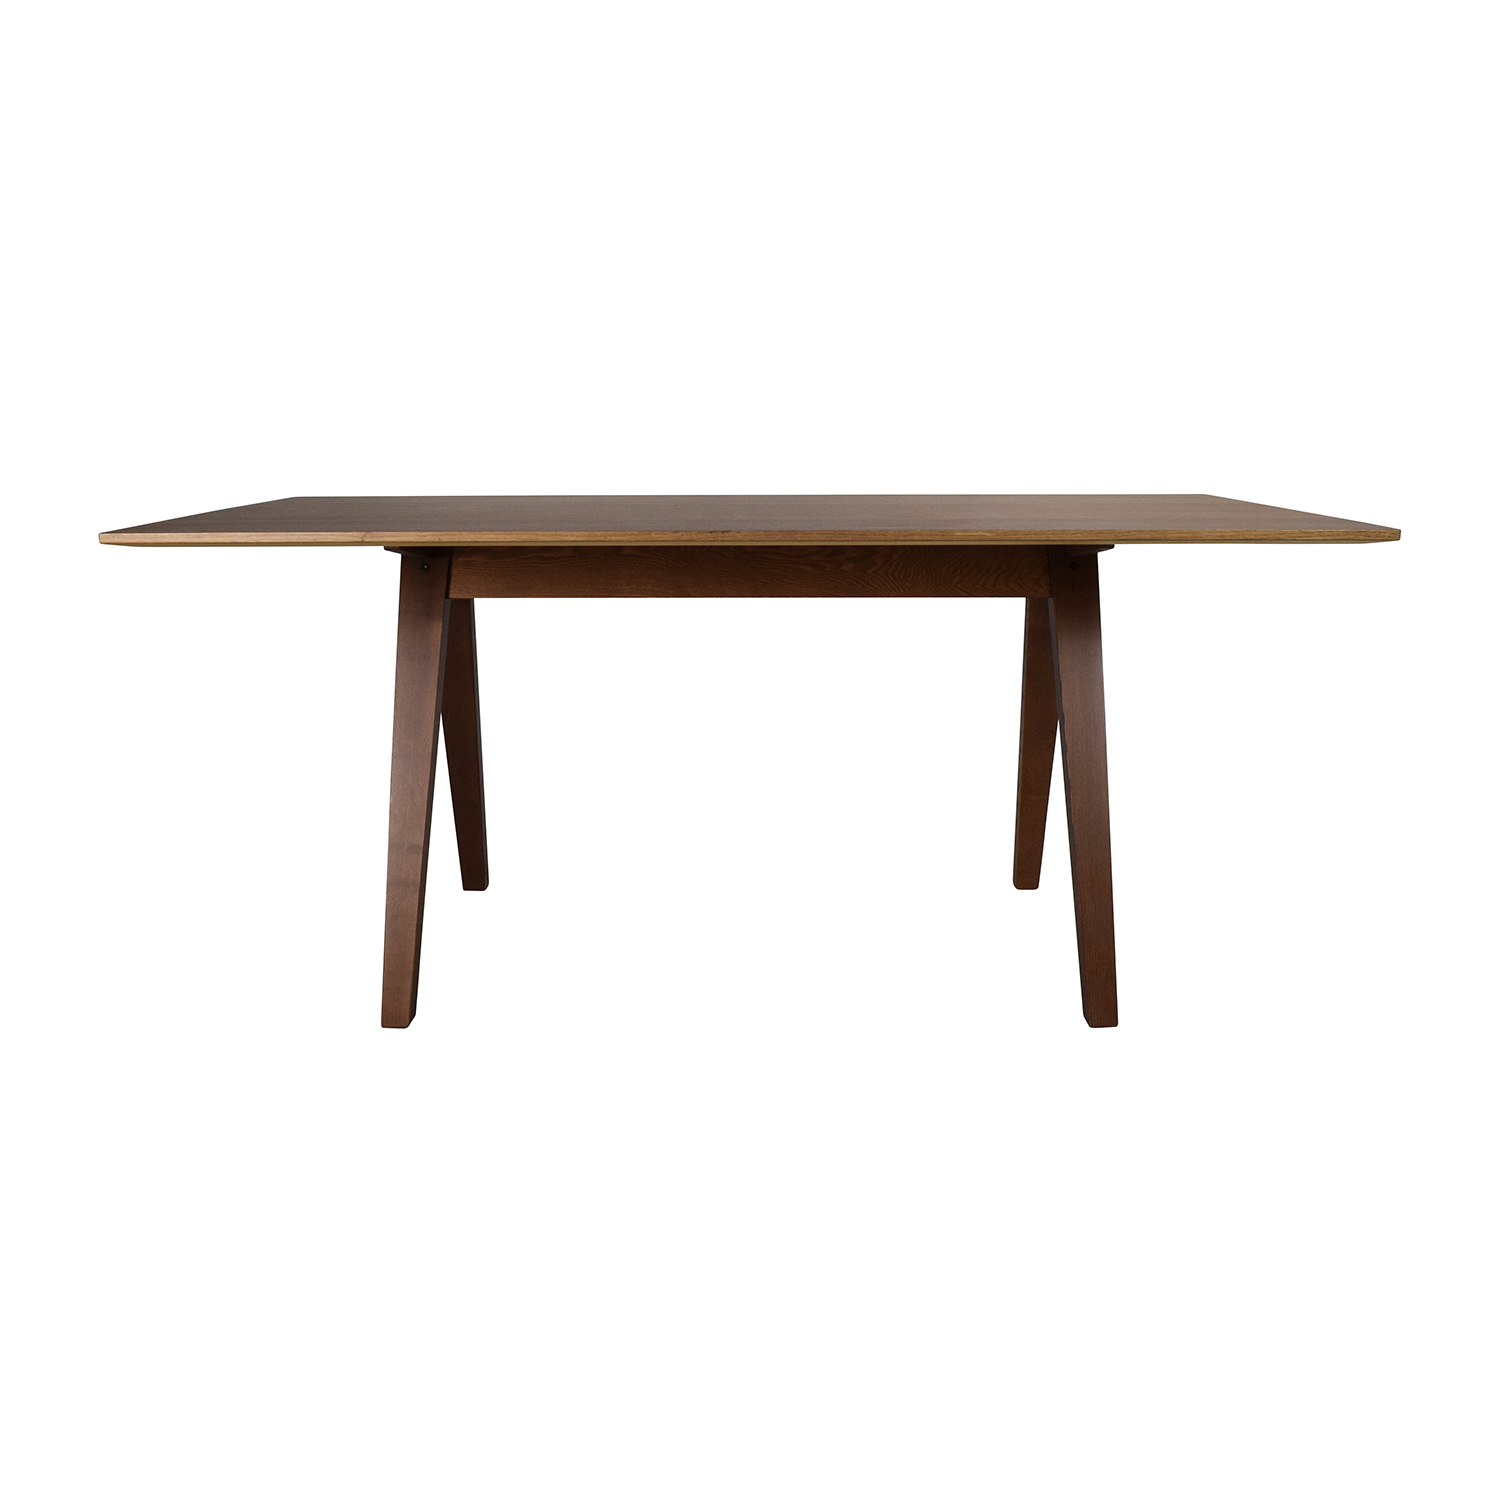 49% OFF - IKEA IKEA Stockholm Dining Table / Tables